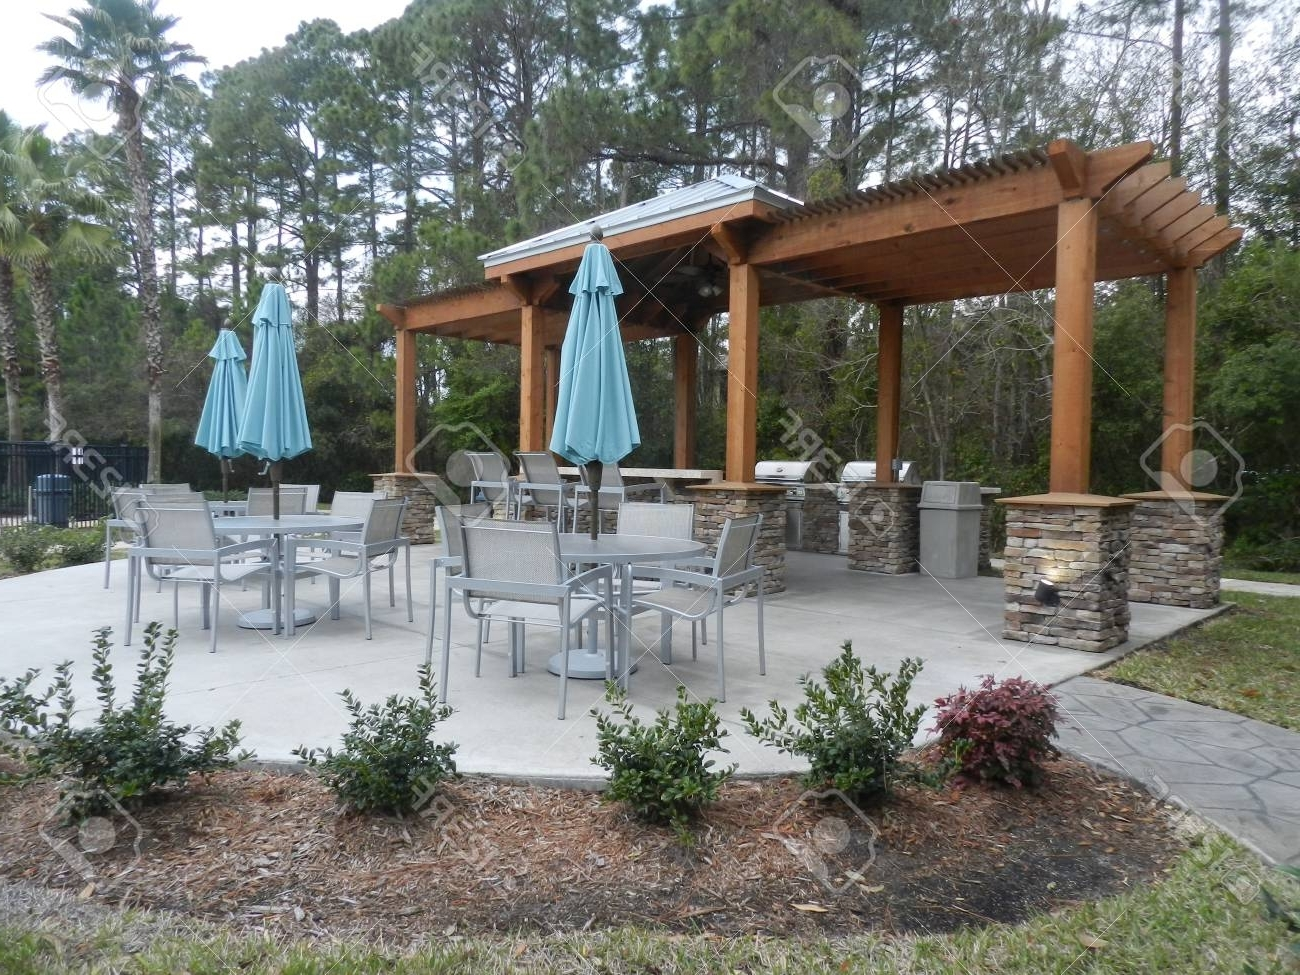 Patio Furniture With Umbrellas On Stone Patio Near Upscale Condo With 2019 Upscale Patio Umbrellas (View 16 of 20)